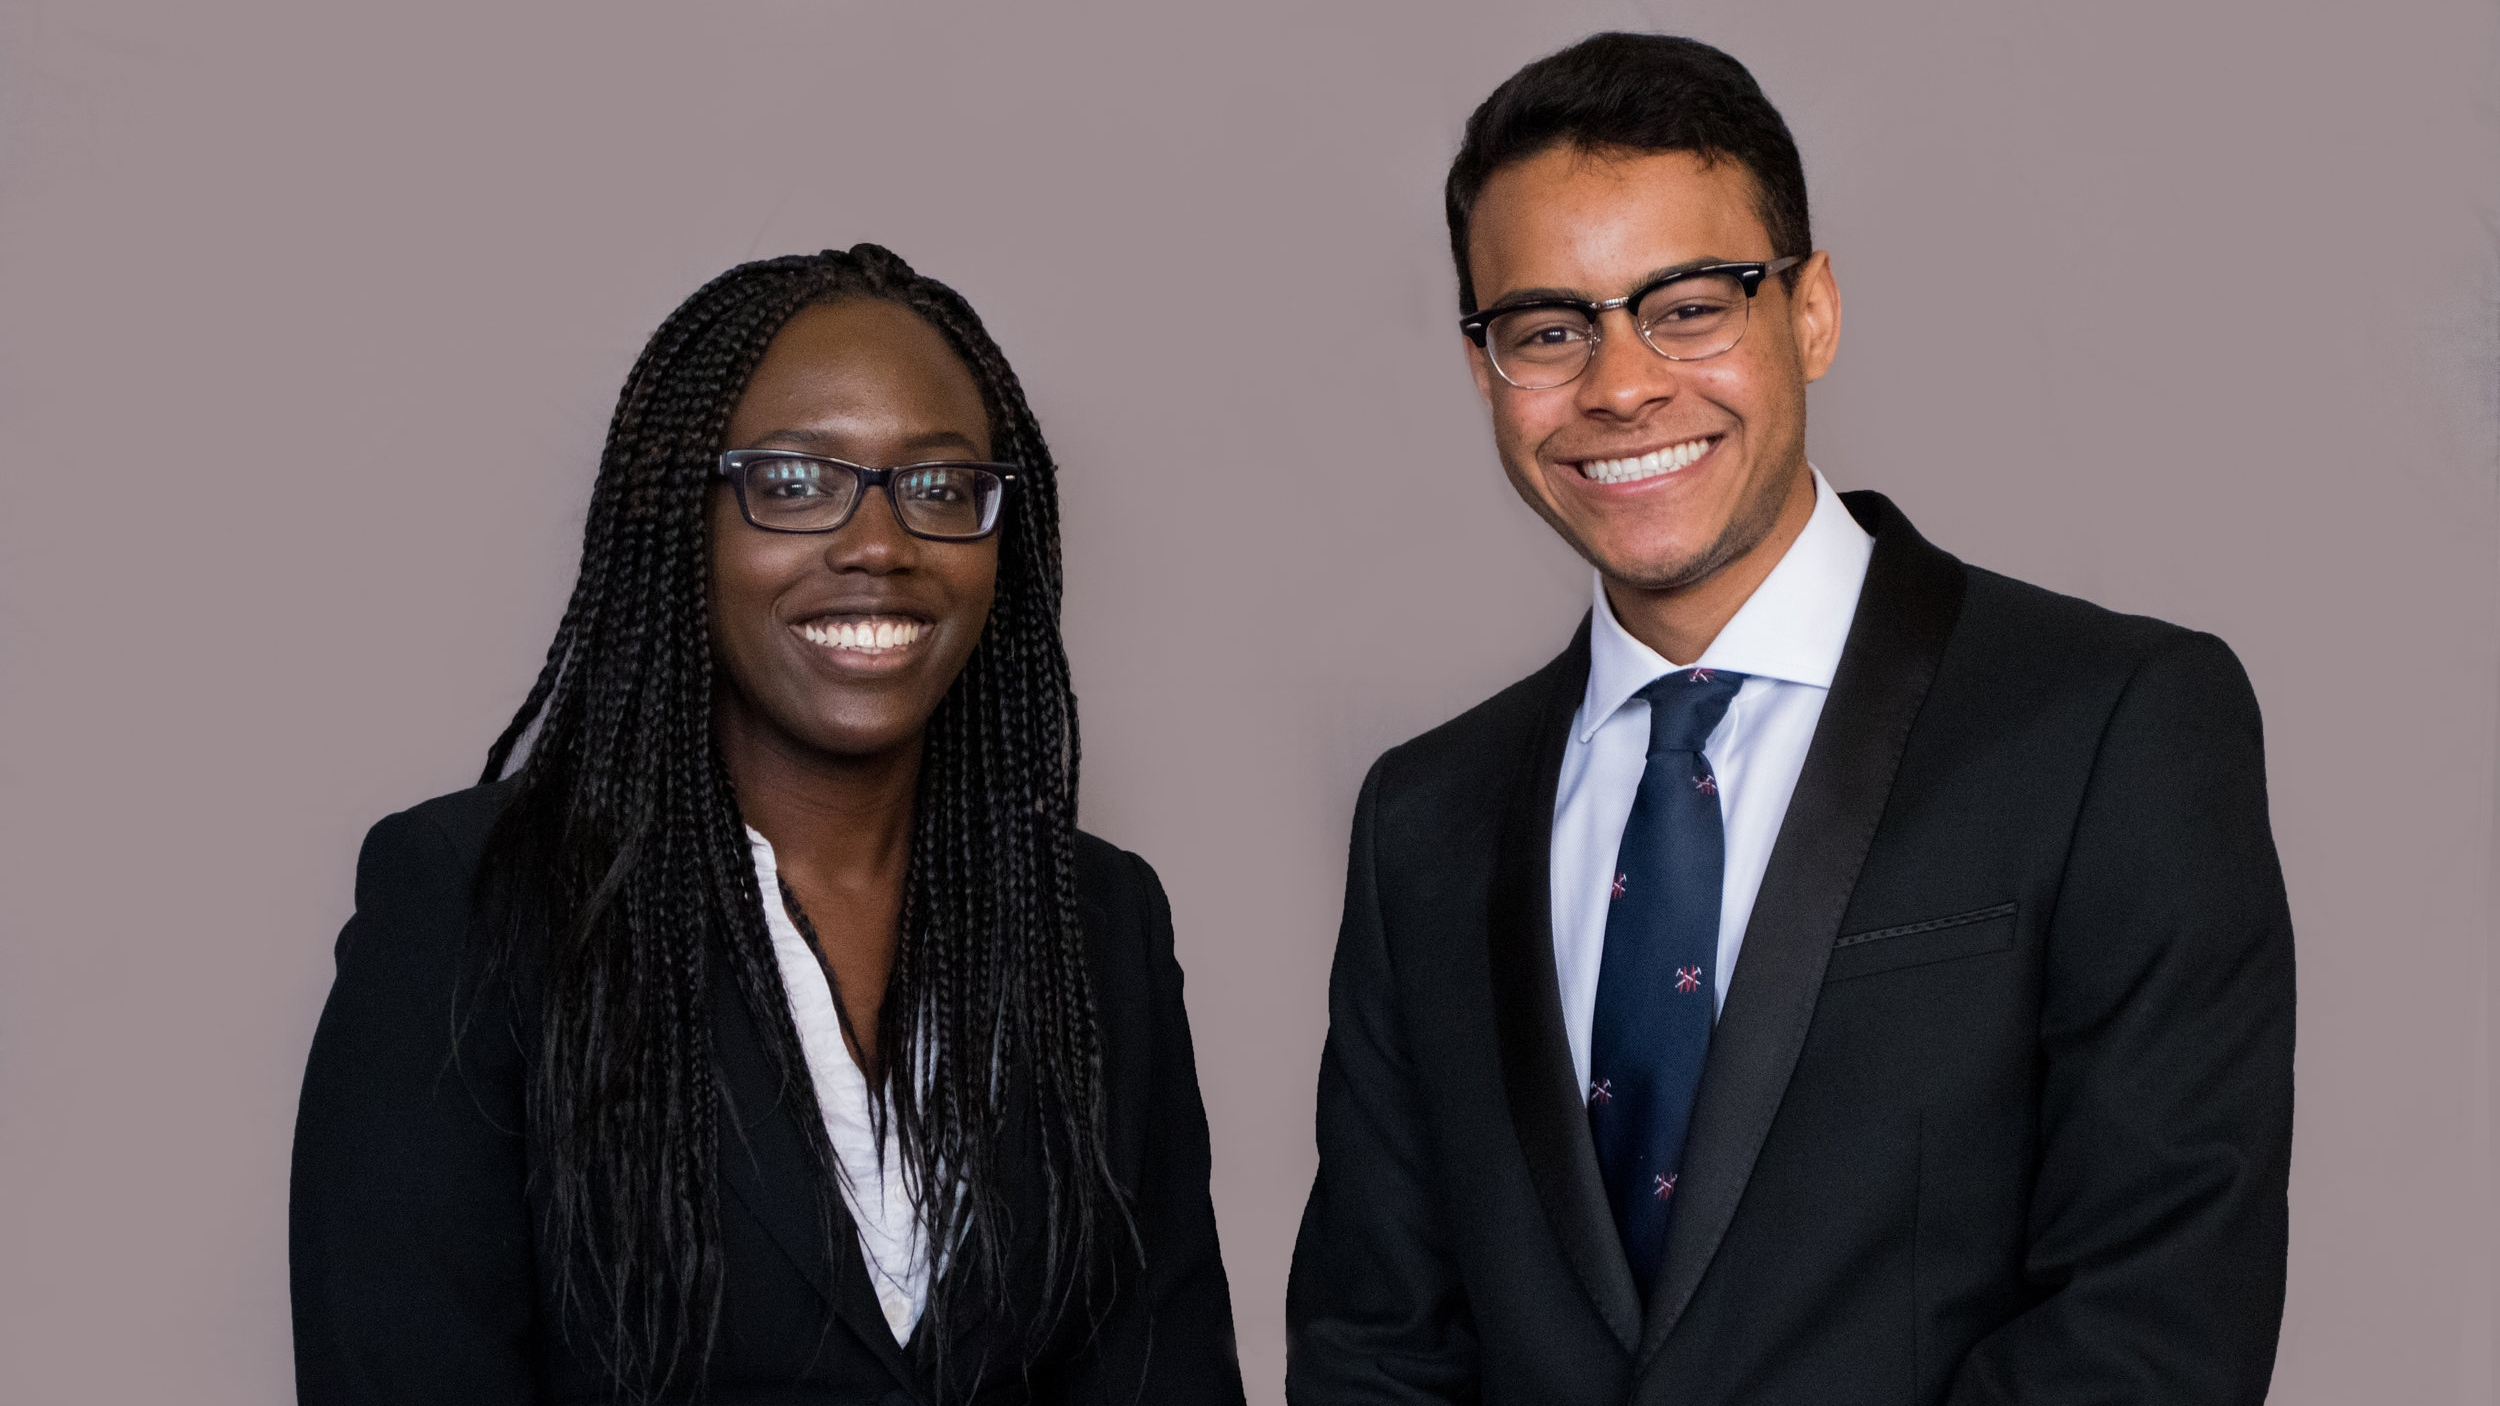 Pictured: Modupe Lucas (Diversity and Inclusion Officer), Samuel Dwarika (International Student Officer).